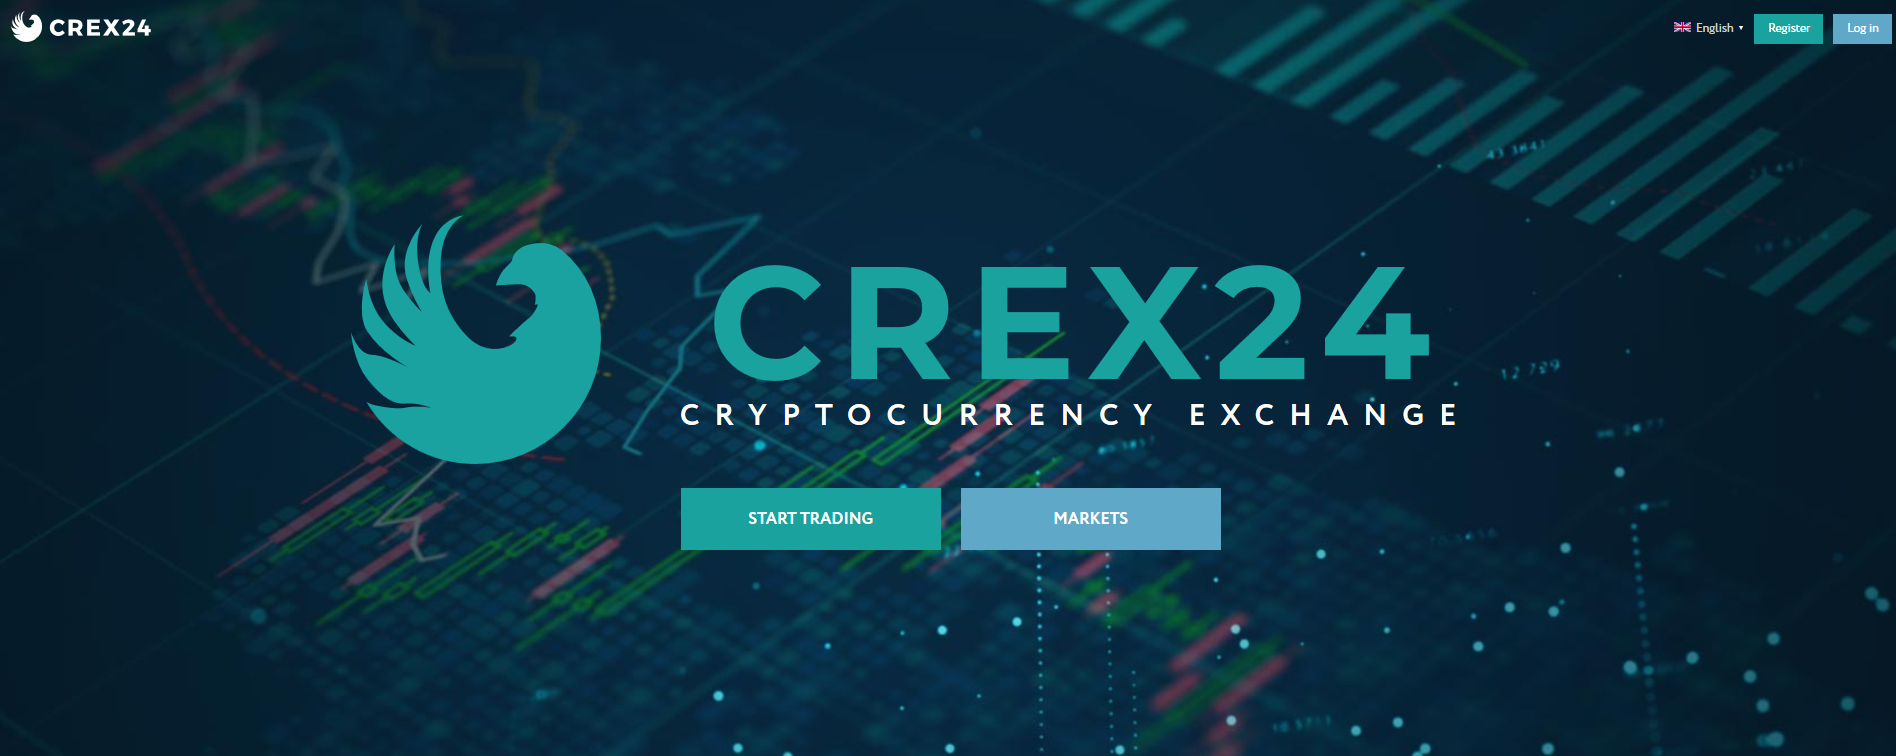 Crex24.com Review – SCAM or PAYING?